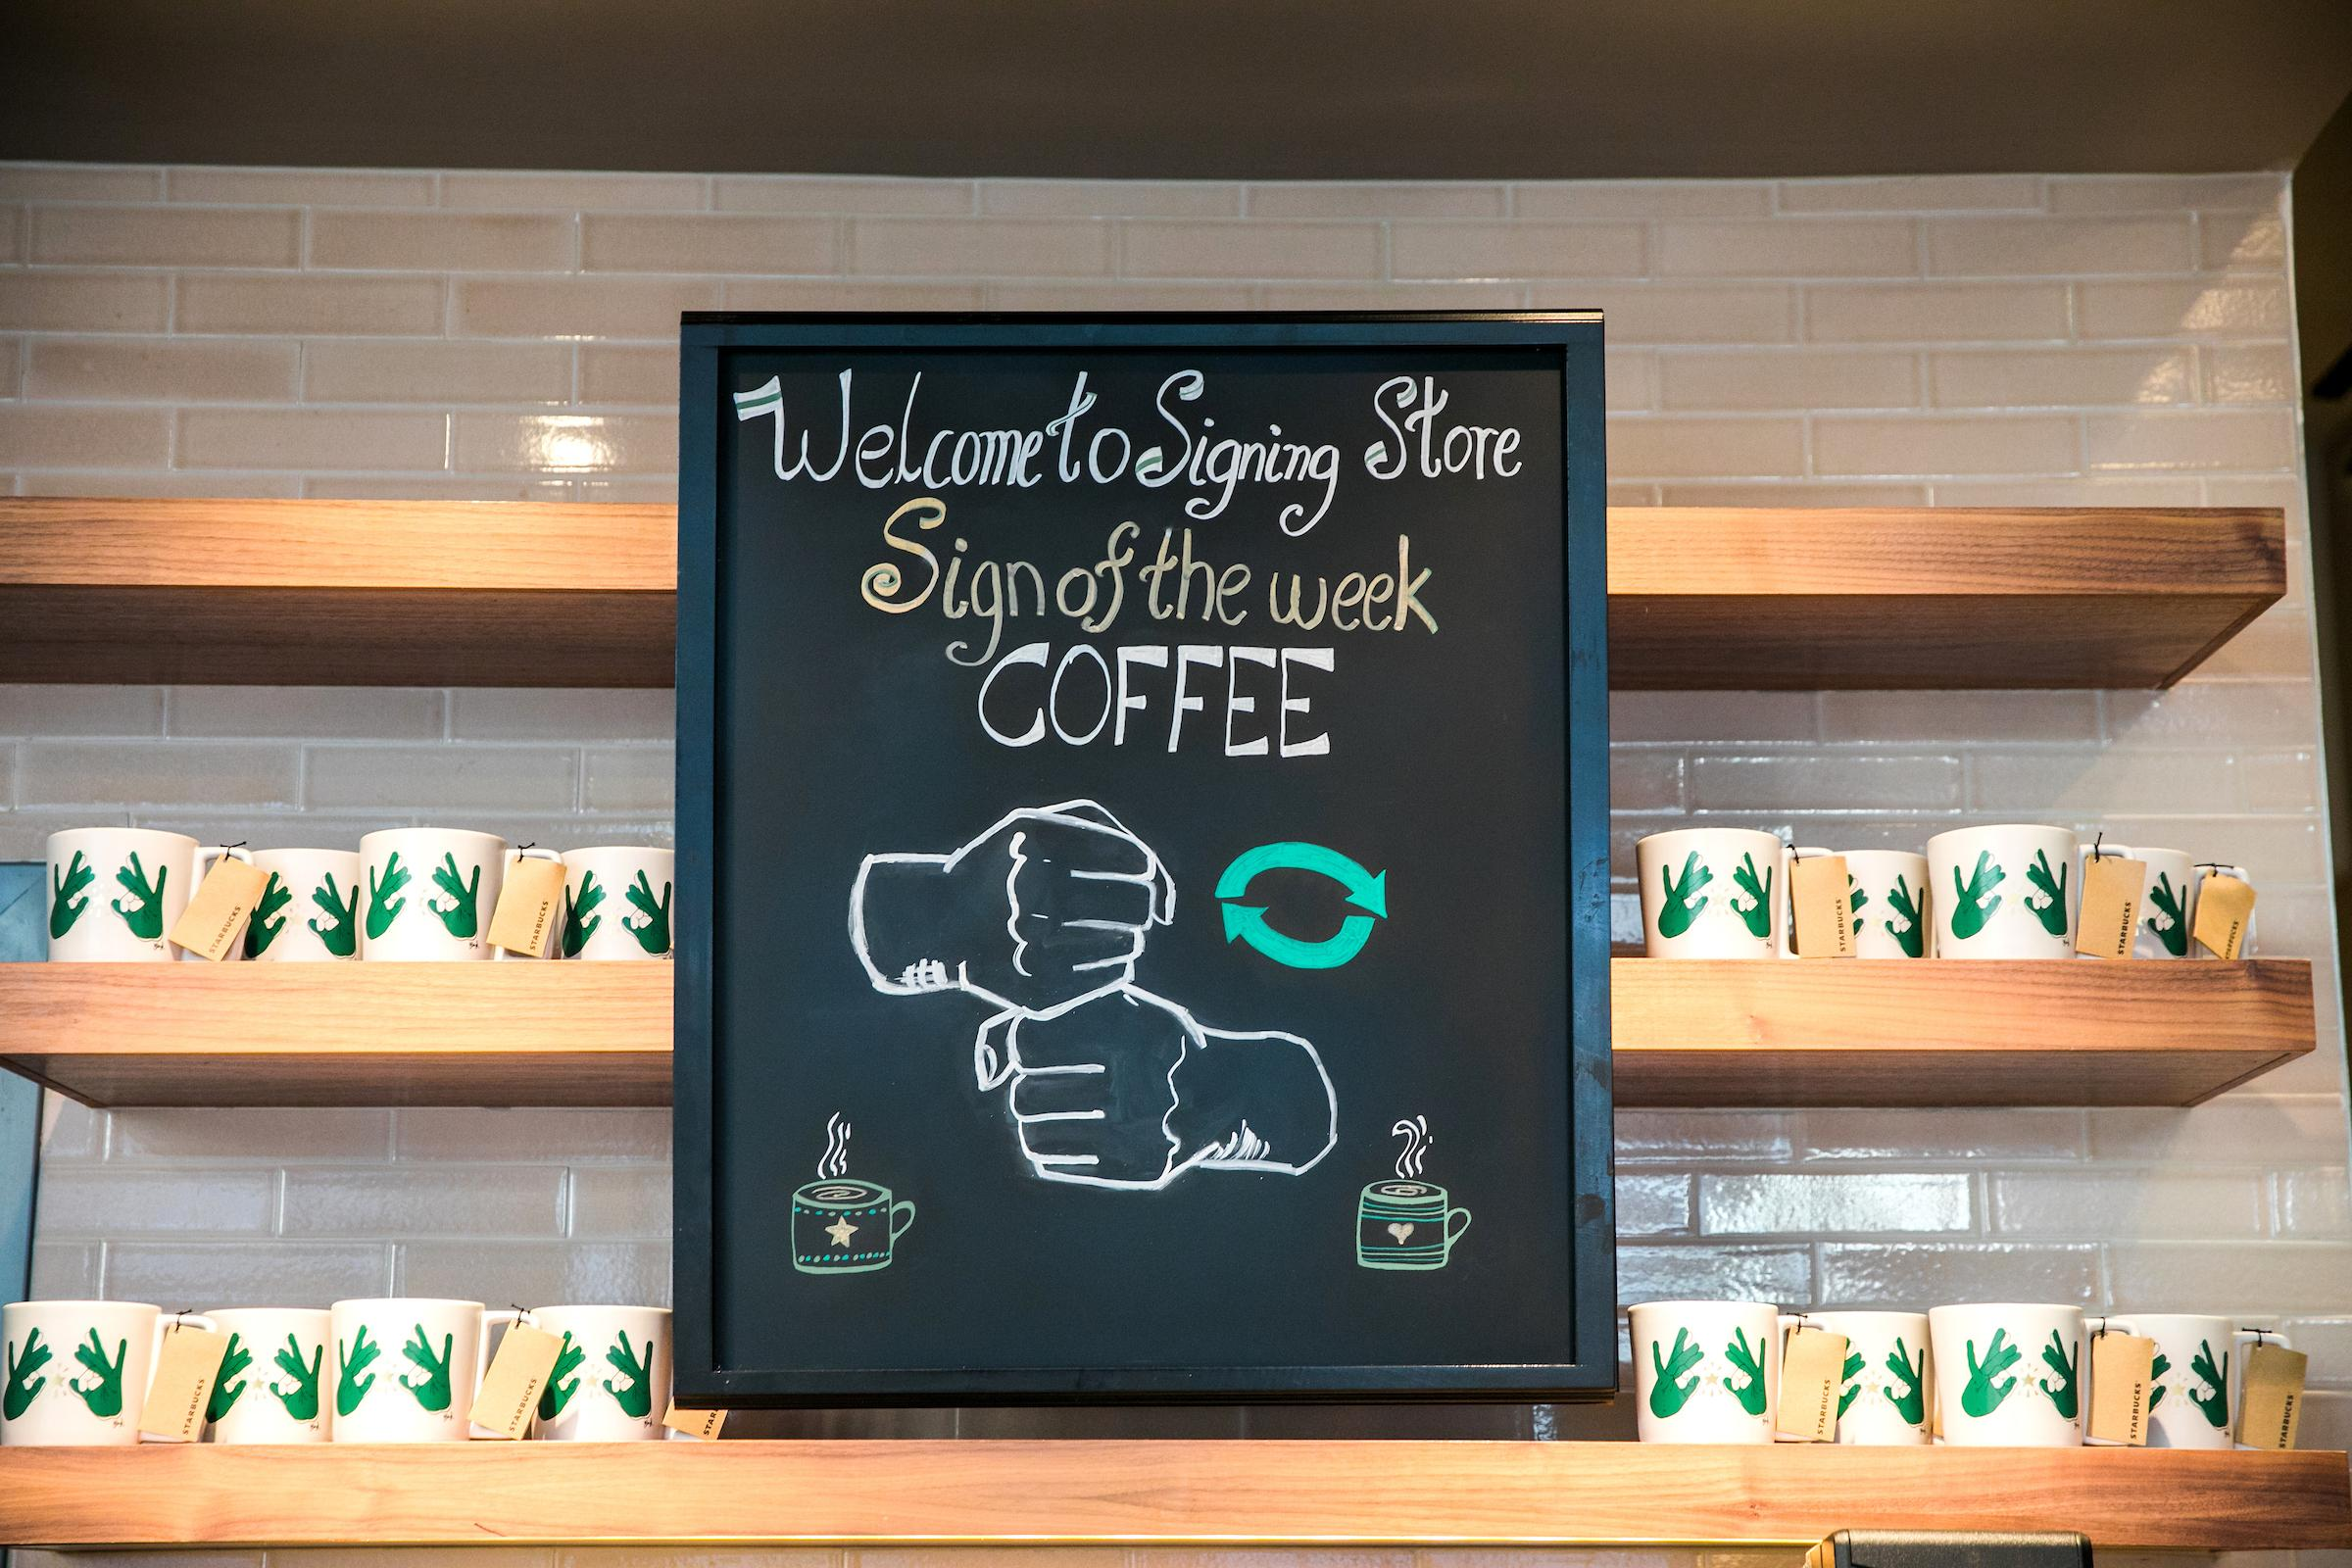 Even if you're just grabbing a coffee to go, you'll have the chance to learn some ASL in the store. (Image: Joshua Trujillo, Starbucks)